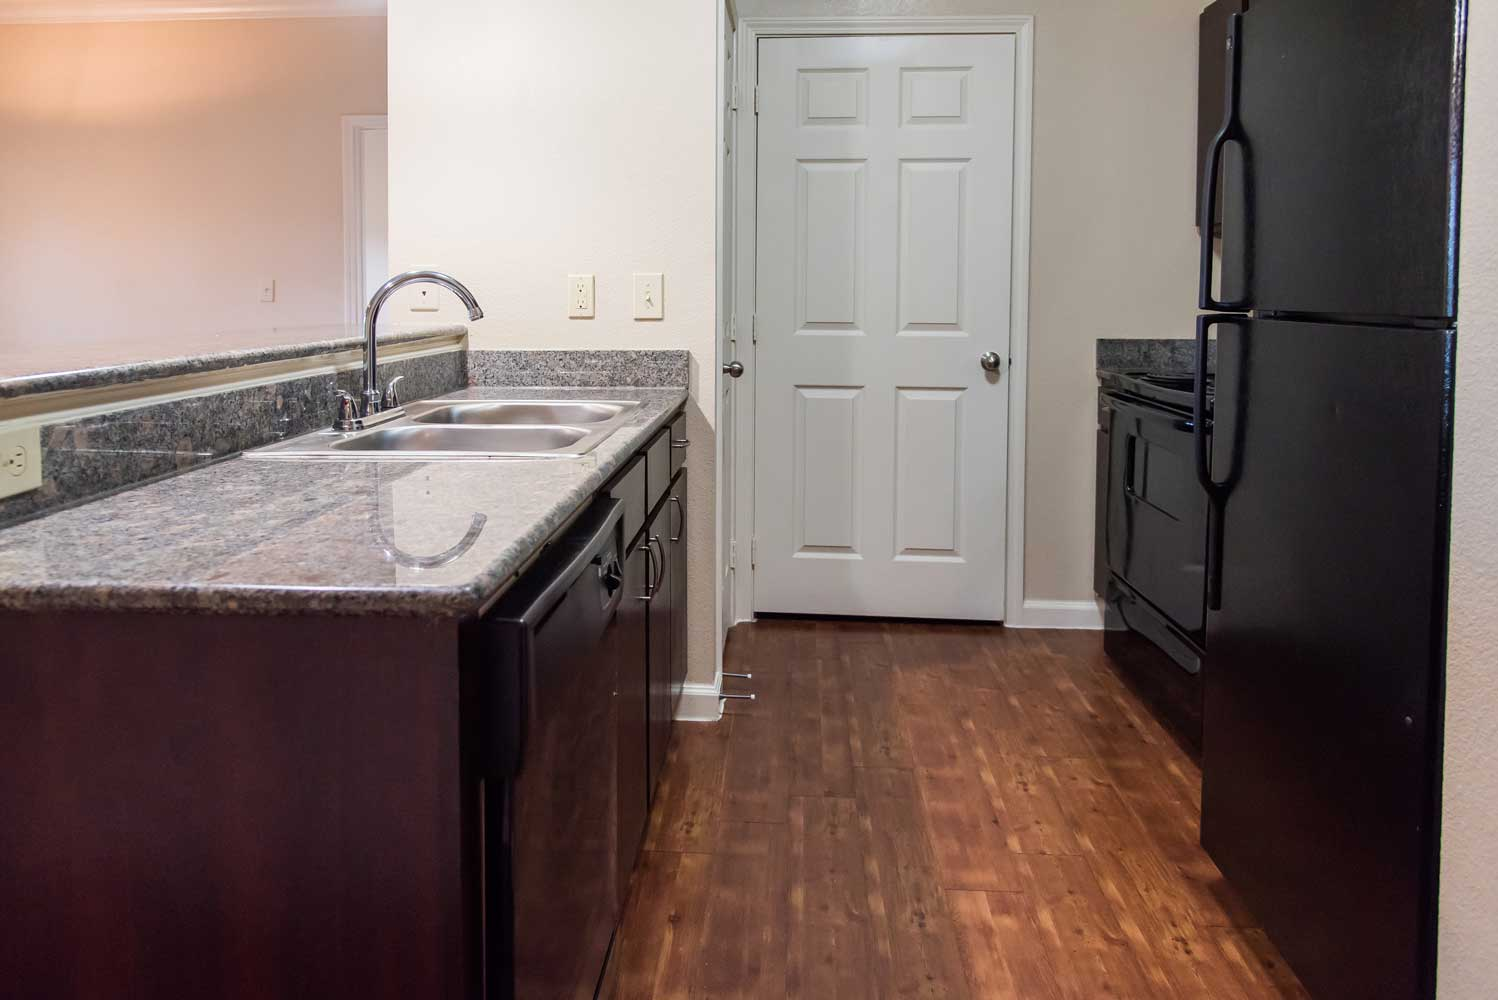 Interior Kitchen at the Oxford at Country Club Apartments in Baytown, TX